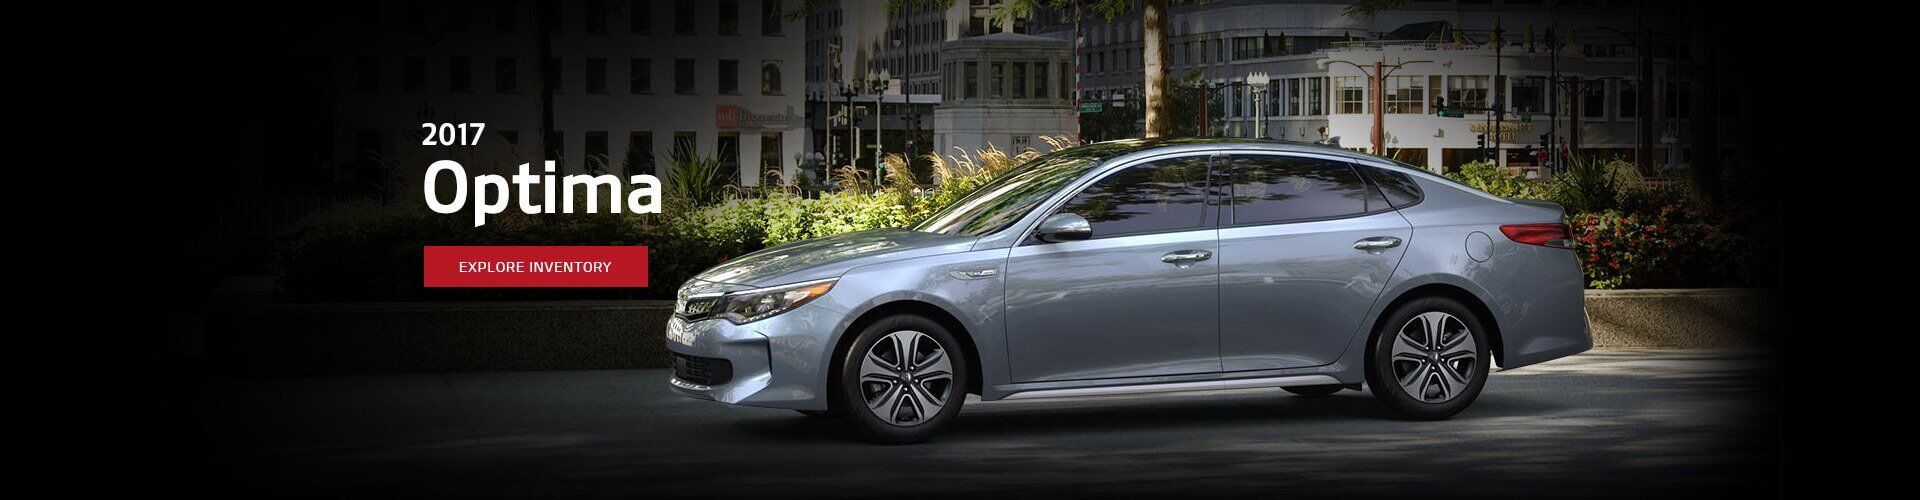 New Kia Optima at Paul Cerame Kia